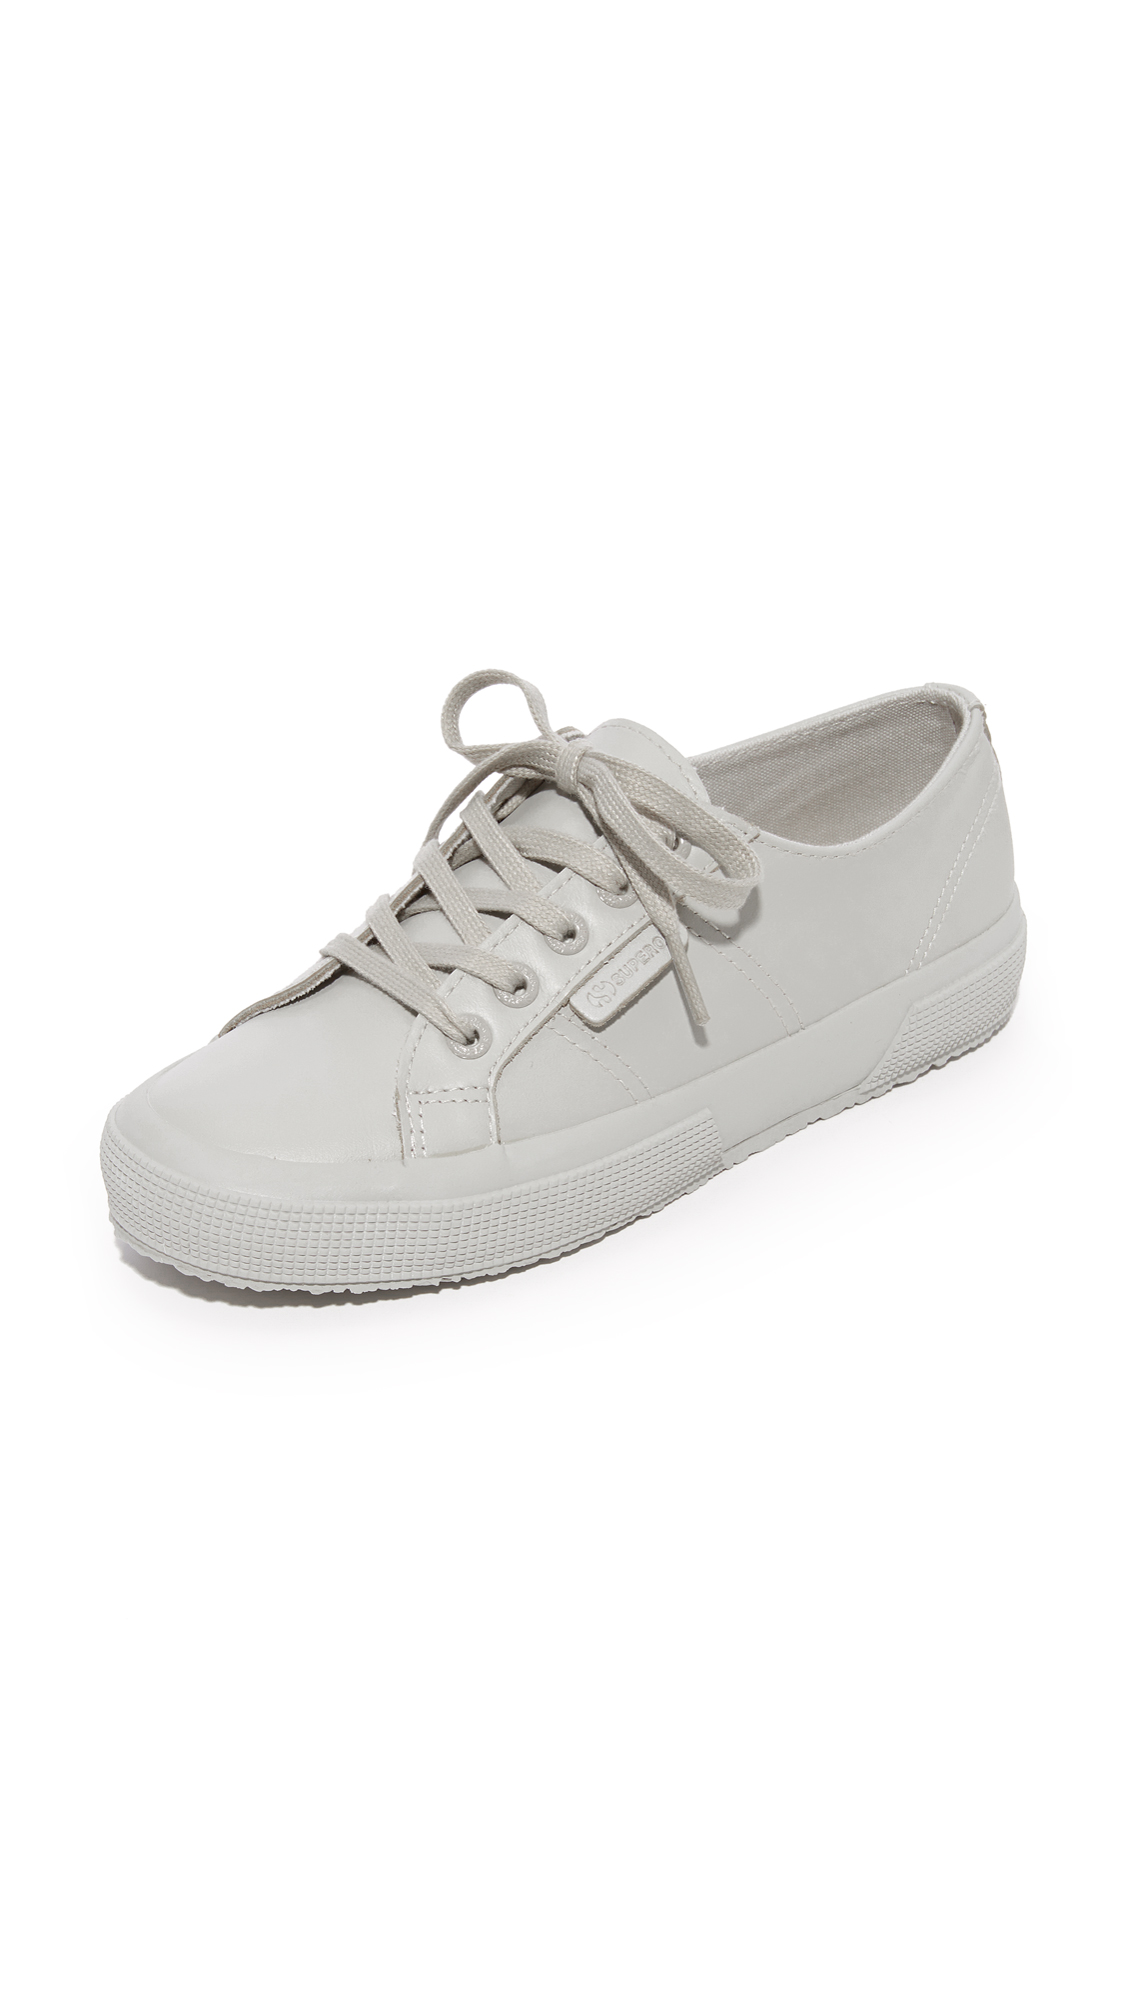 Superga 2750 FGLU Tonal Sneakers - Light Grey